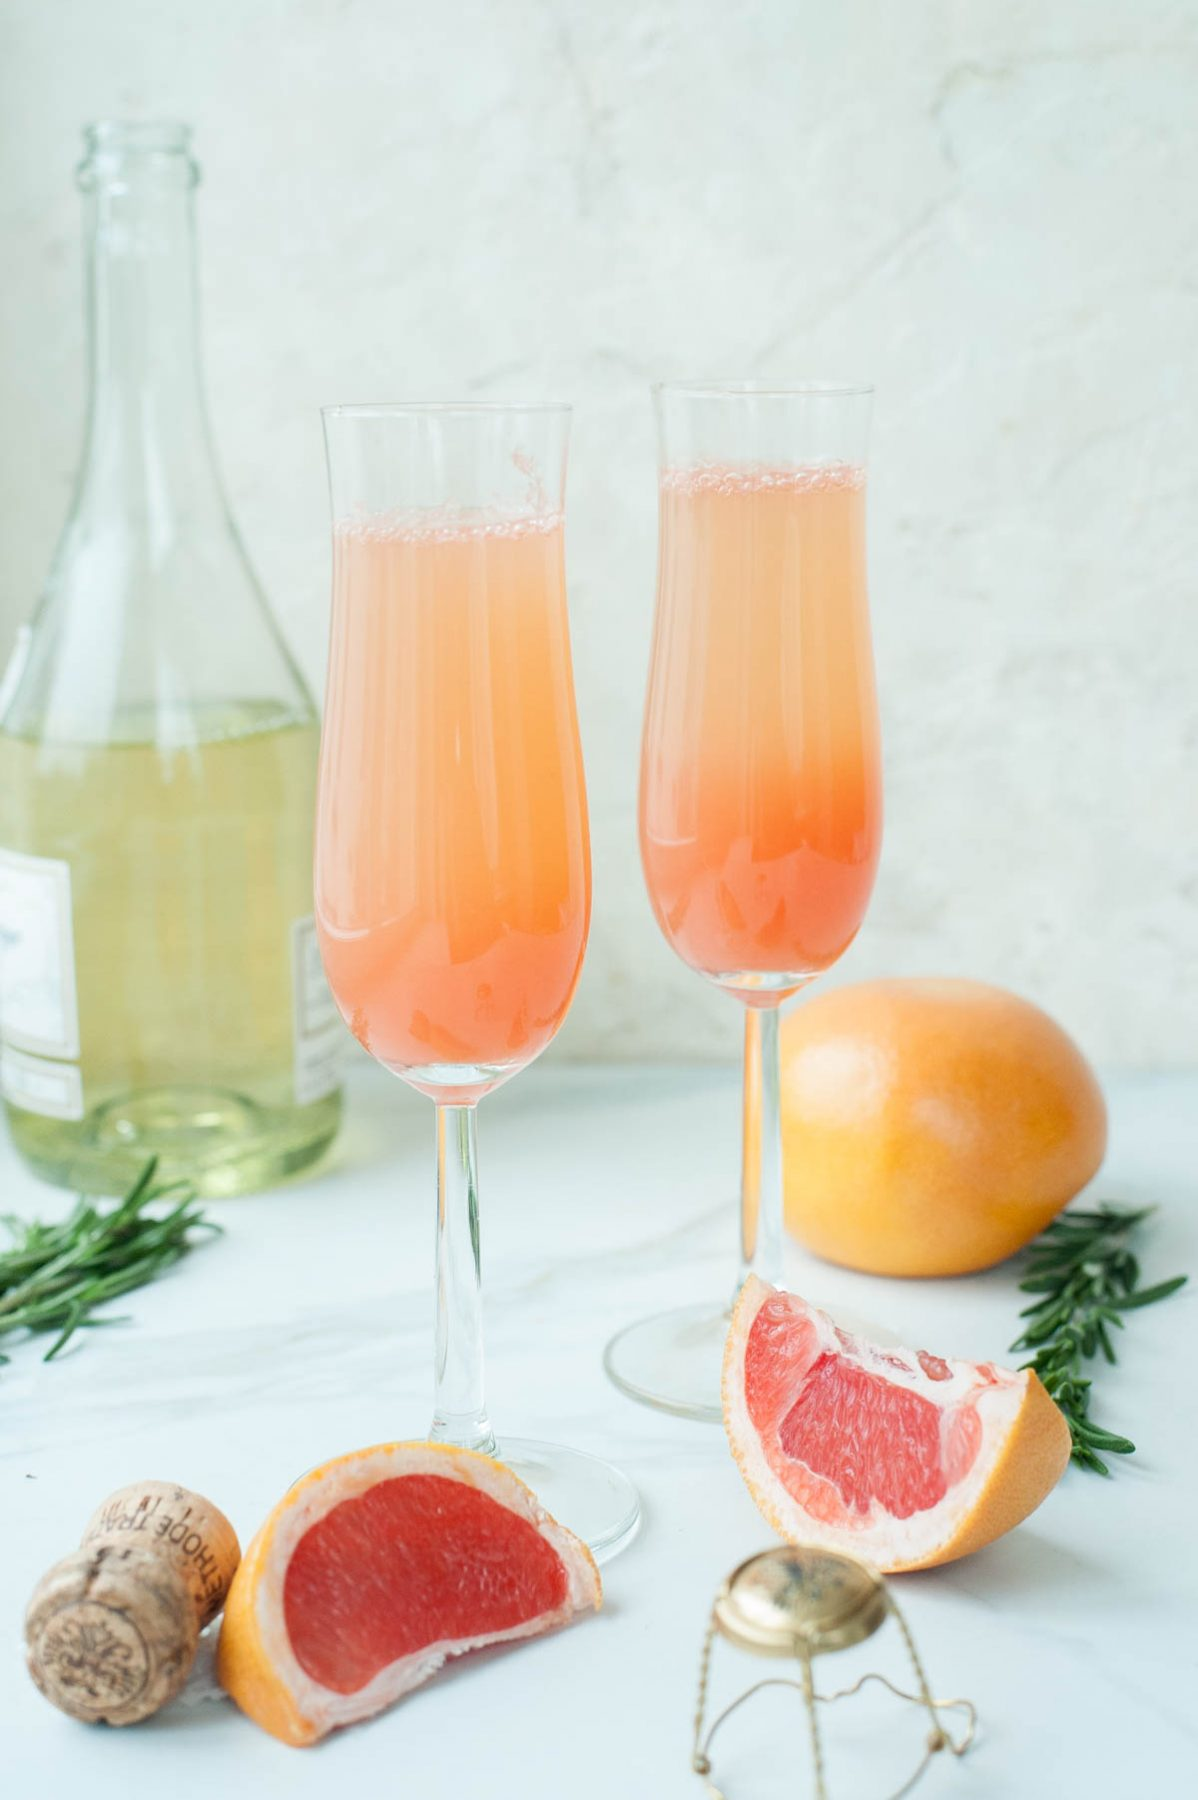 two champagne glasses filled with grapefruit mimosa, grapefruit, rosemary and champagne in the background